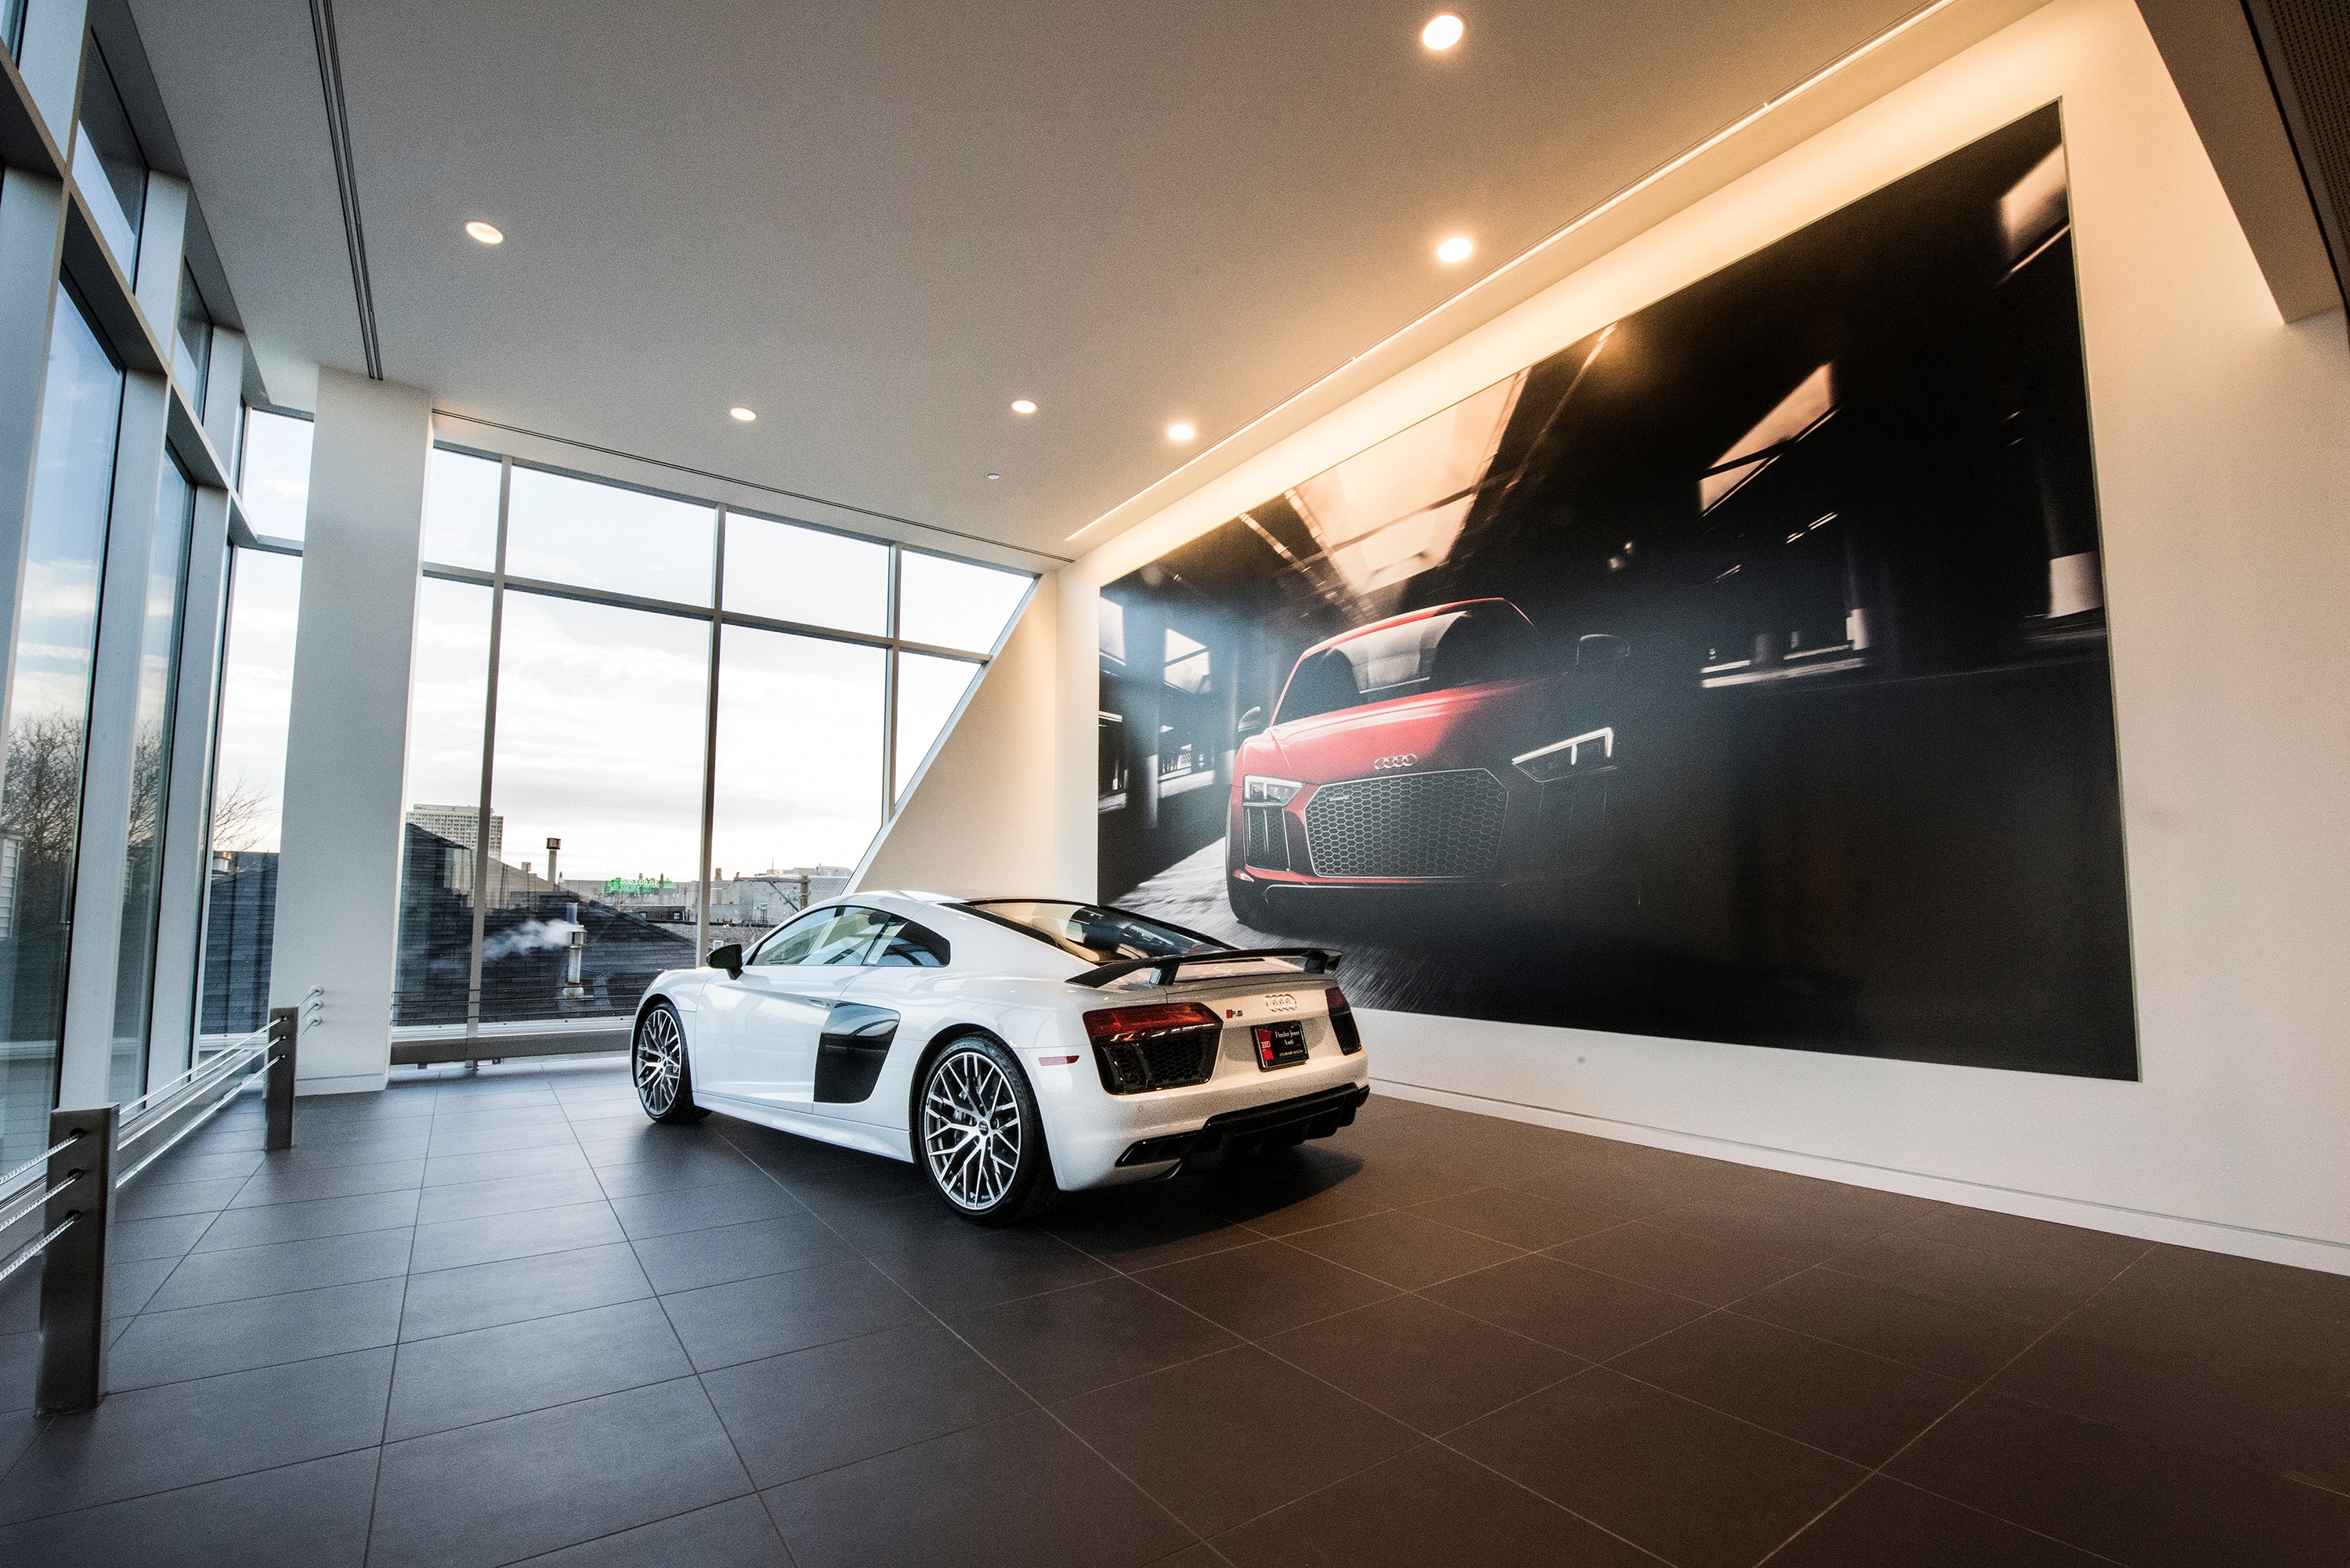 audi construction market international contractors mariano marianosbroadwayave firm chicago fresh lakeview s out build interior dealership inc